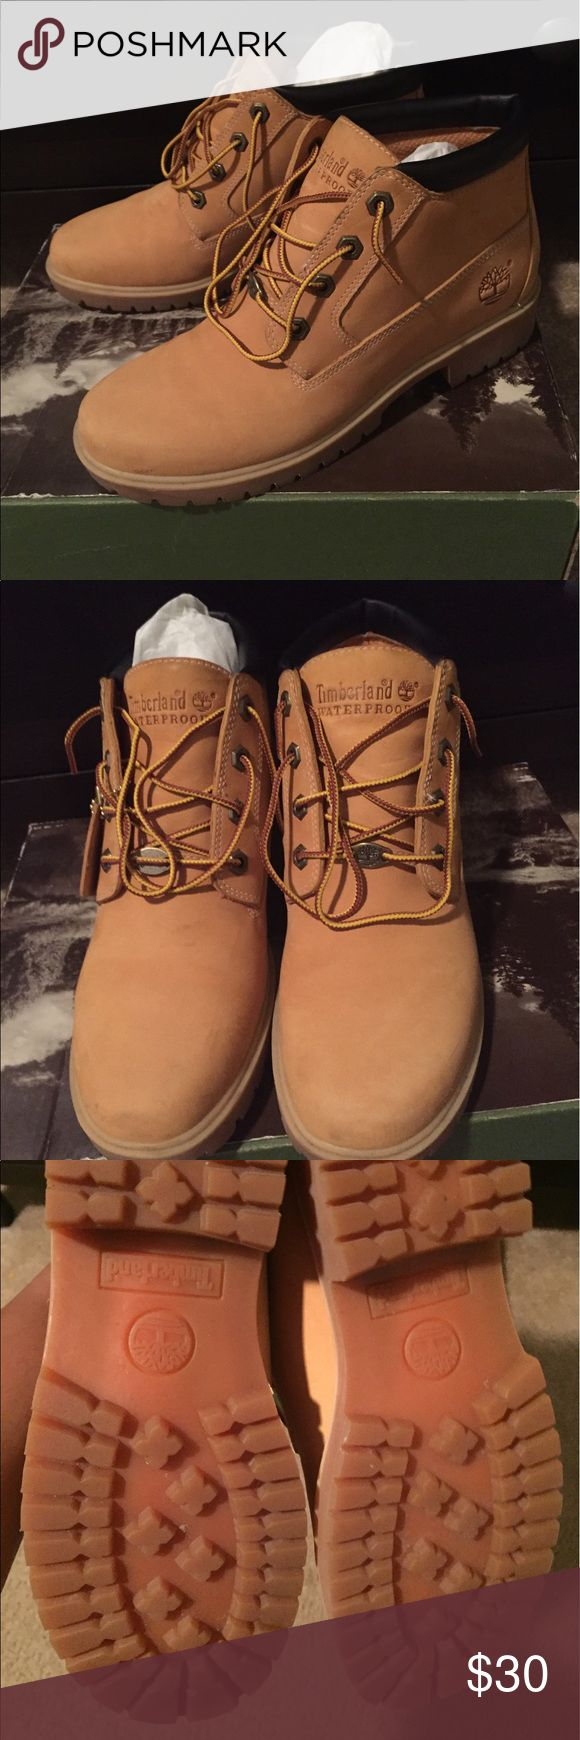 Ladies Timberland boots Timberland boots - EXCELLENT condition. Worn twice. Timberland Shoes Winter & Rain Boots